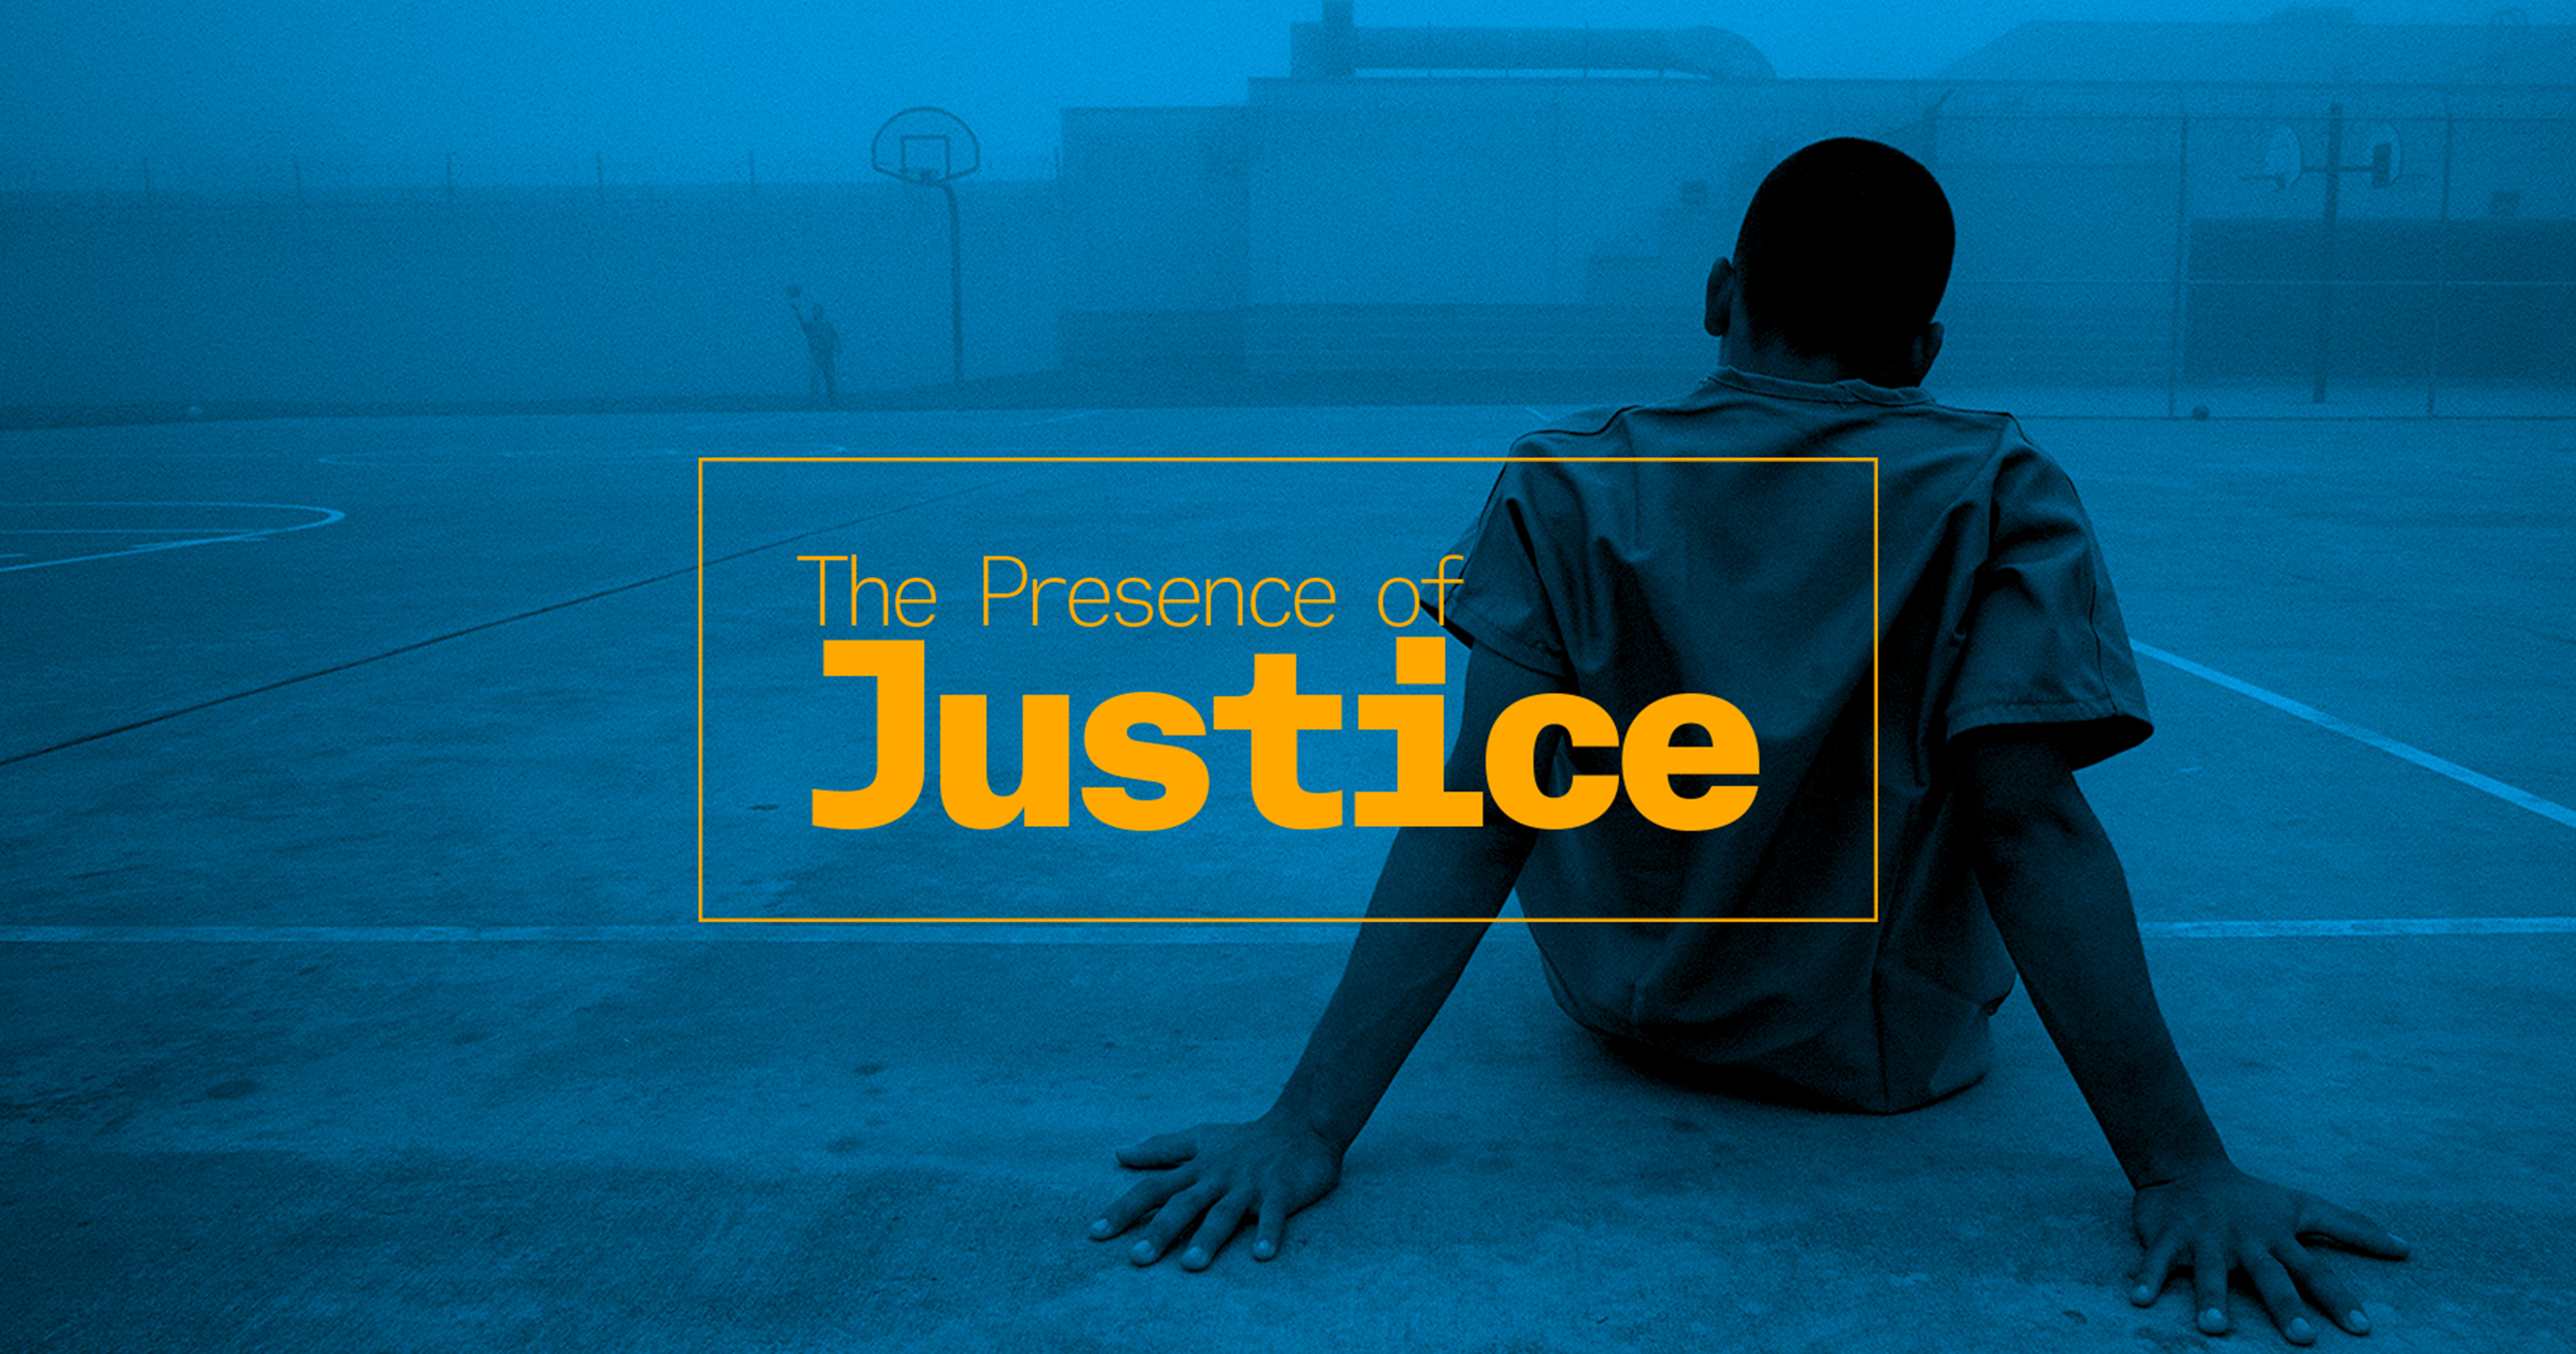 The Presence of Justice